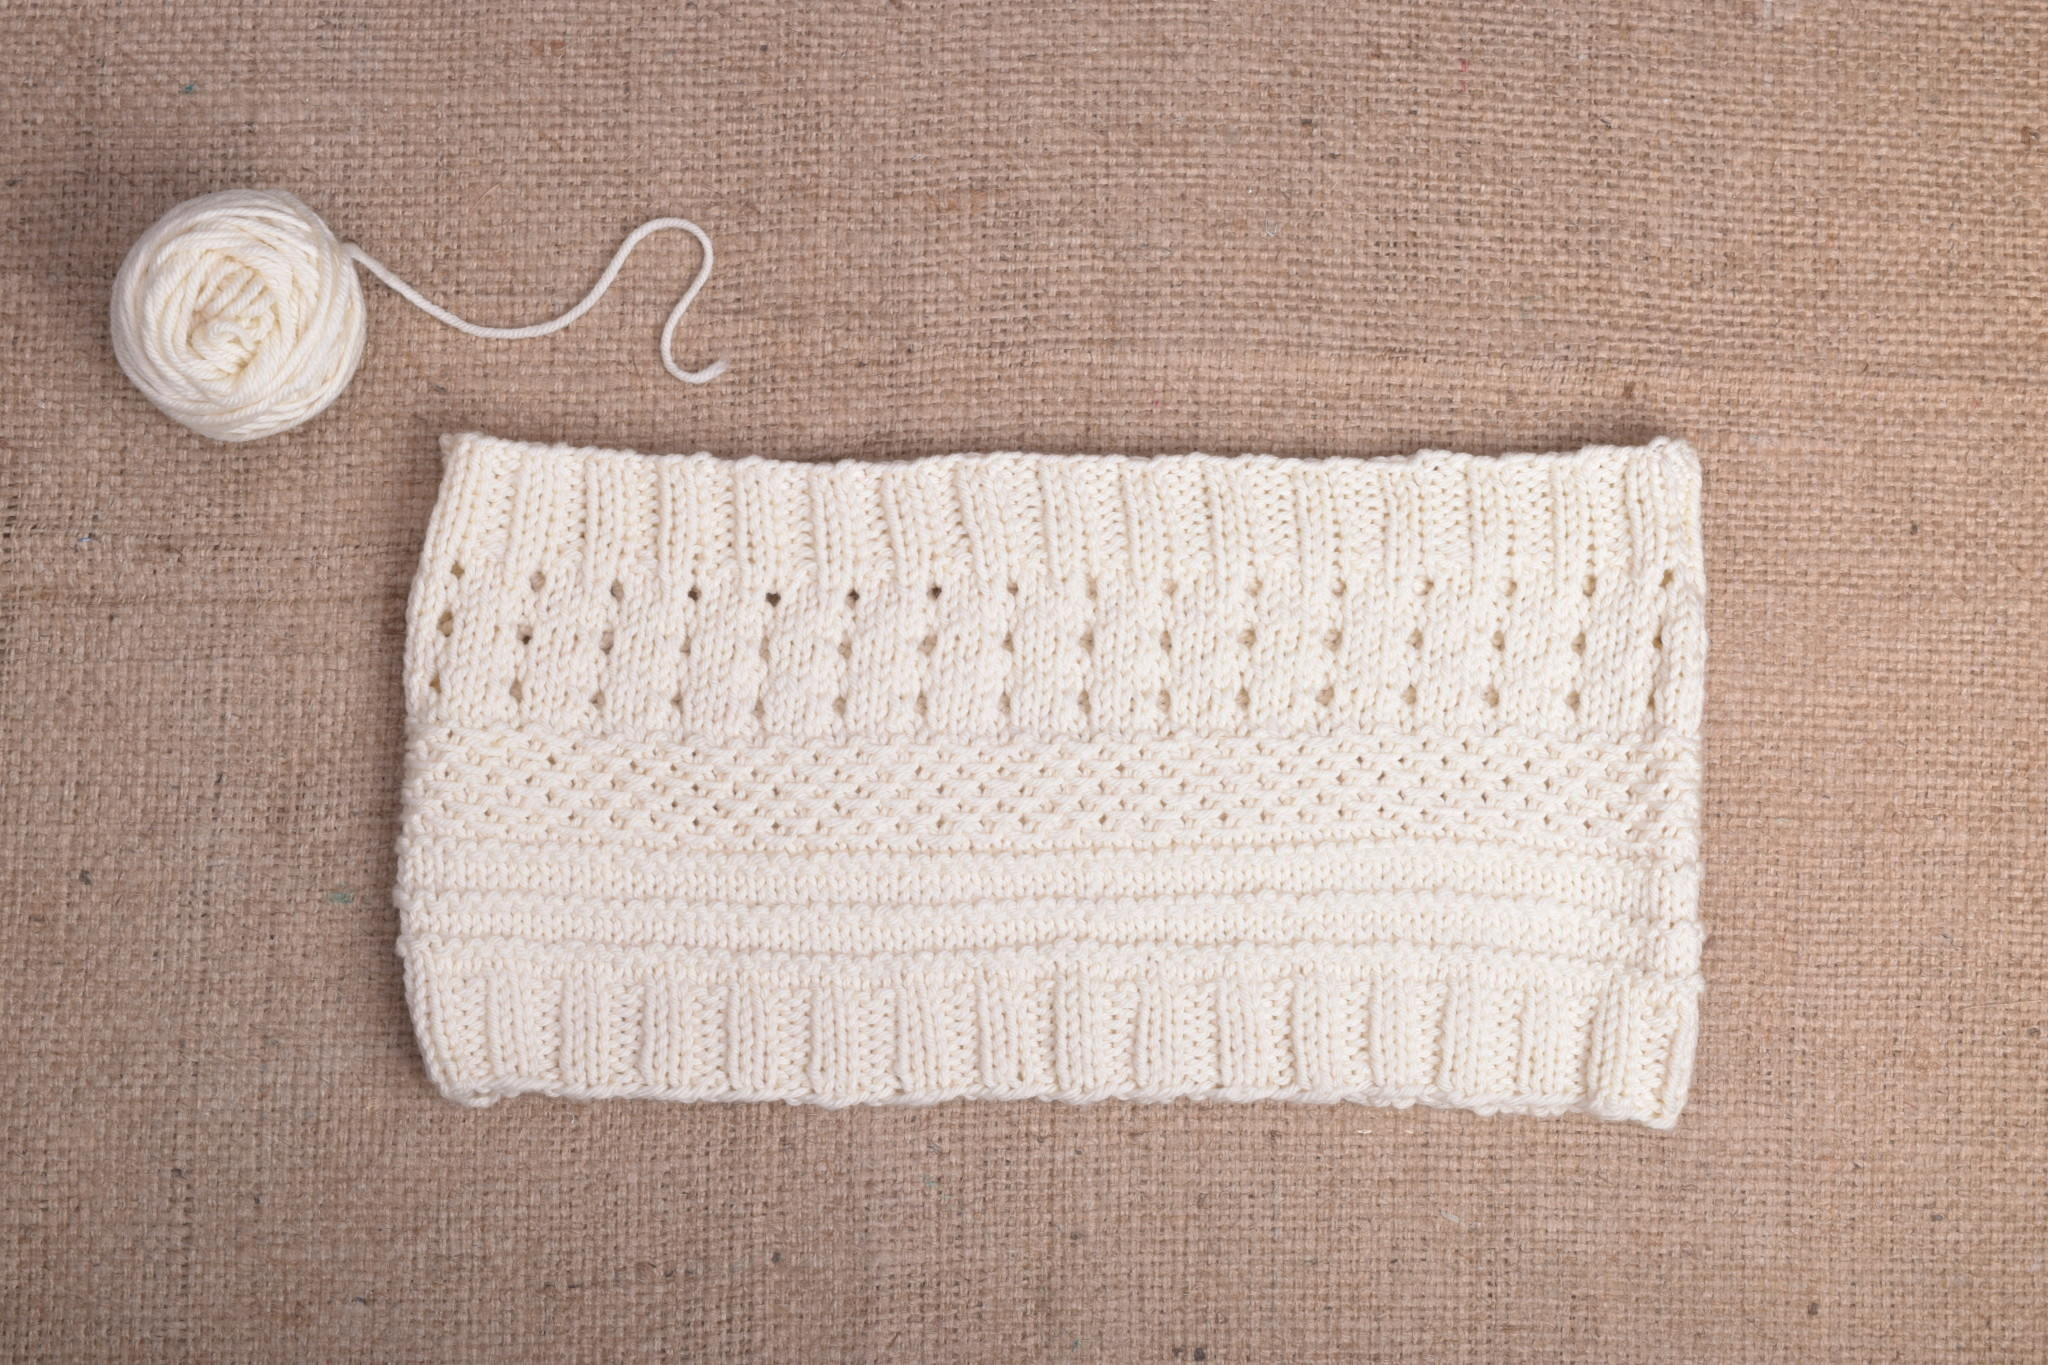 Knitting 101: Learn to Knit; Monday, April 1, 8, 15, 22;  1:00-3:00PM